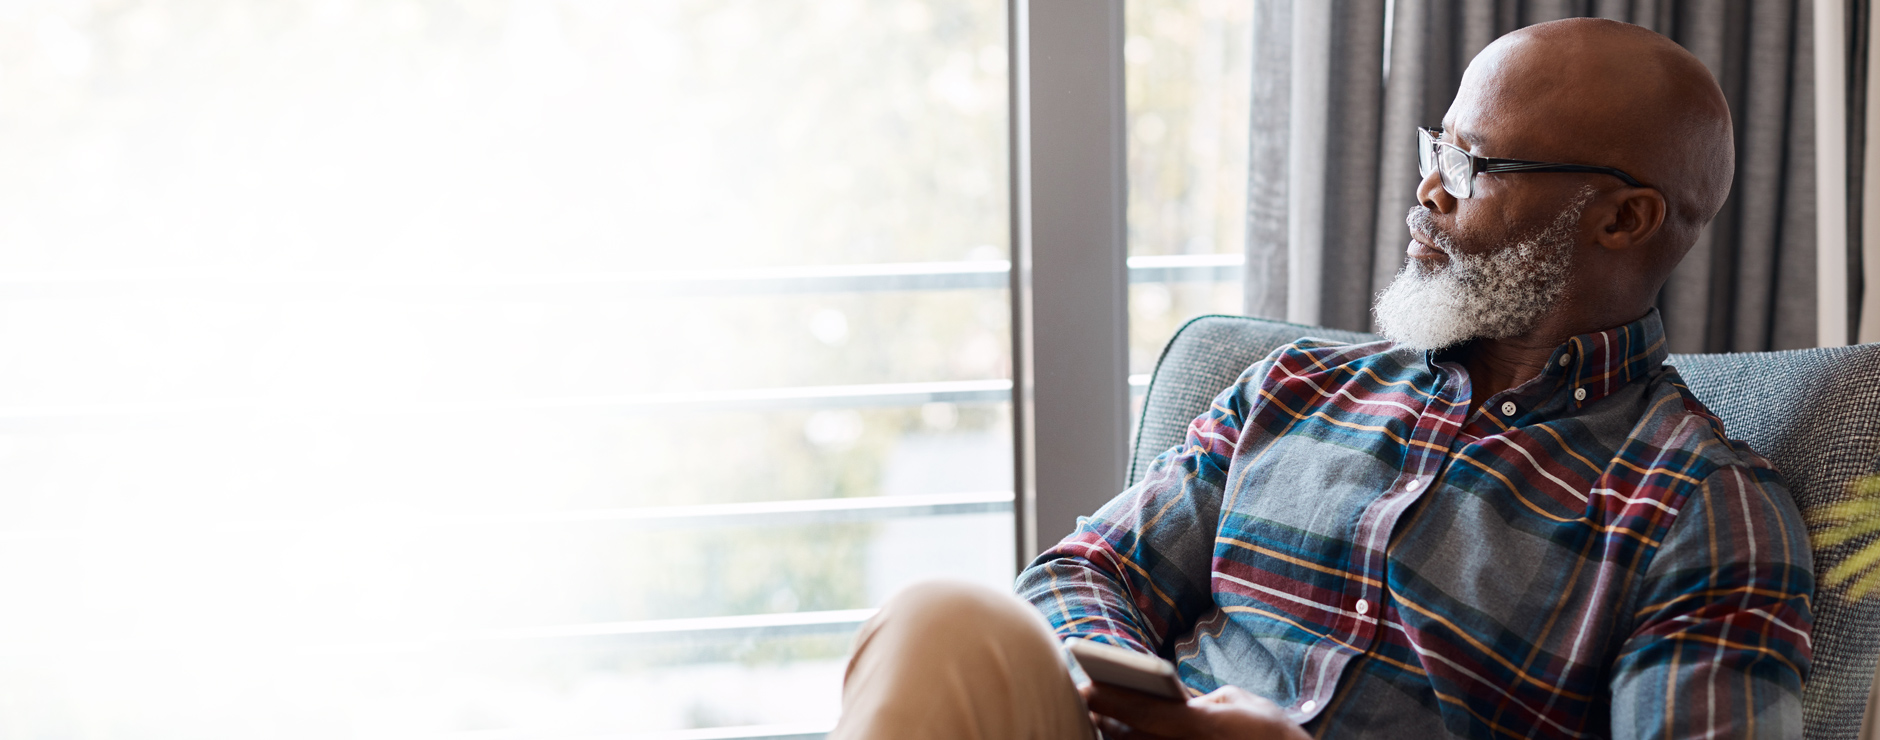 man in plaid shirt sitting in chair preparing to schedule colorectal cancer screening